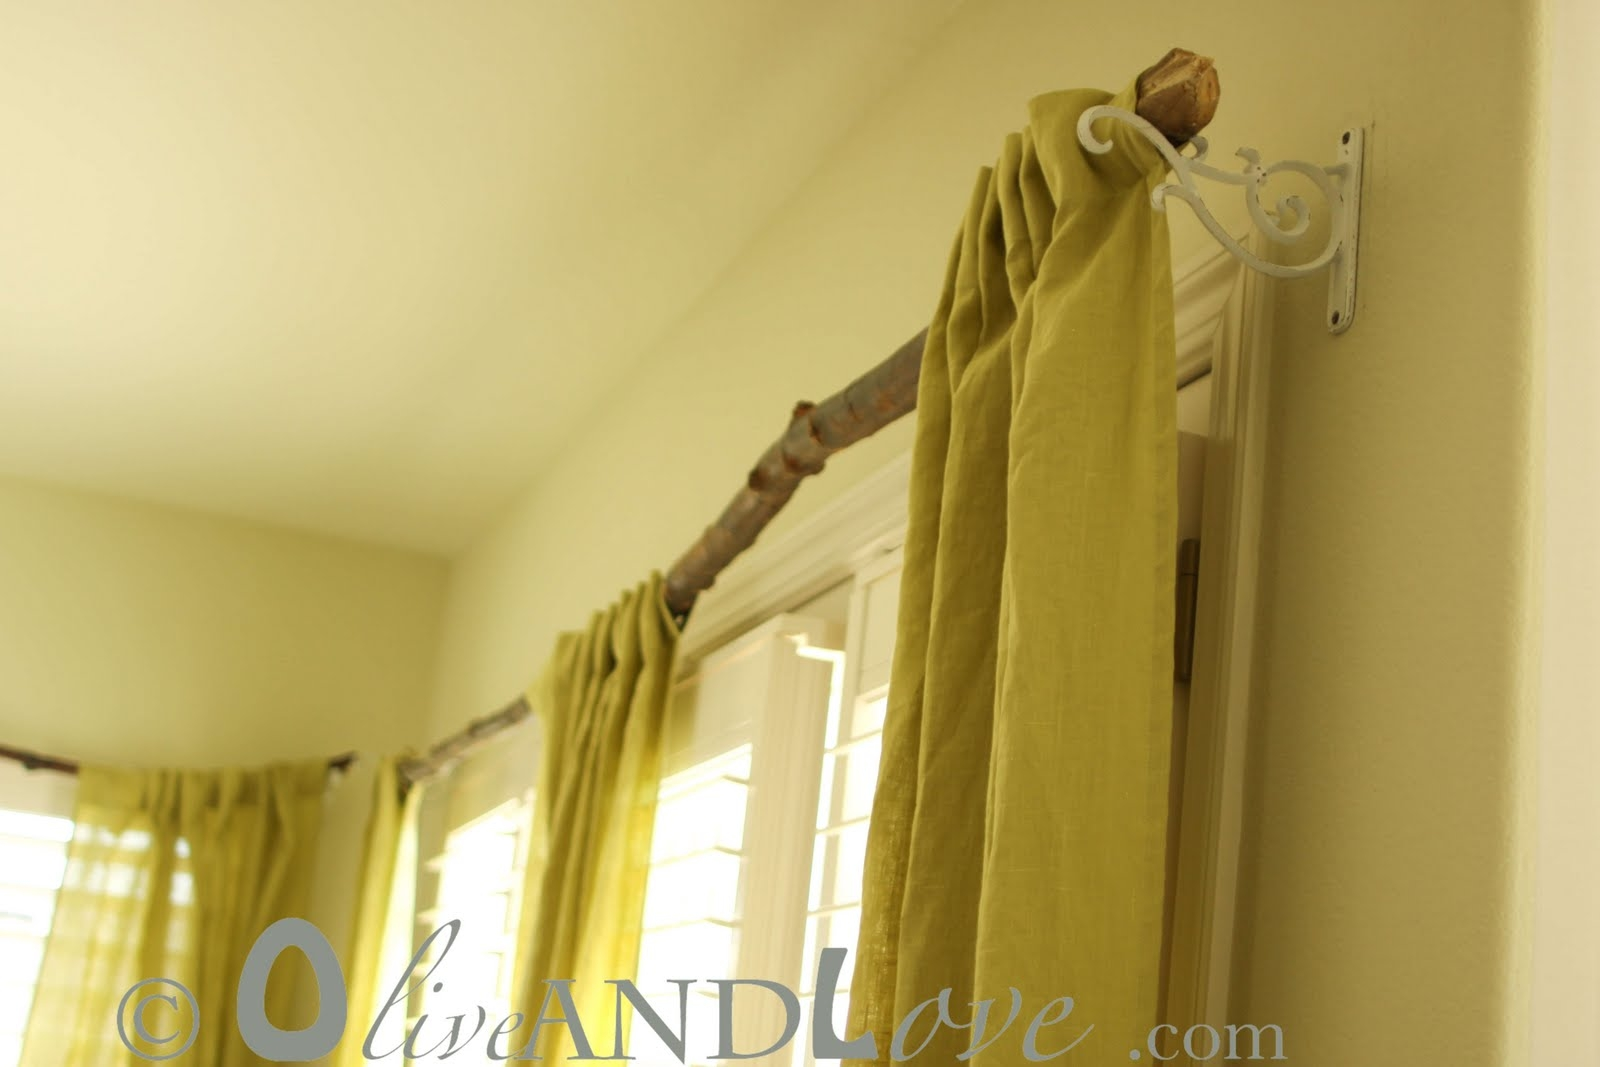 Curtain Rods Ergonomic Tree Branch Curtain Rods 76 Tree Branch Regarding Bamboo Curtain Rods (Image 10 of 25)